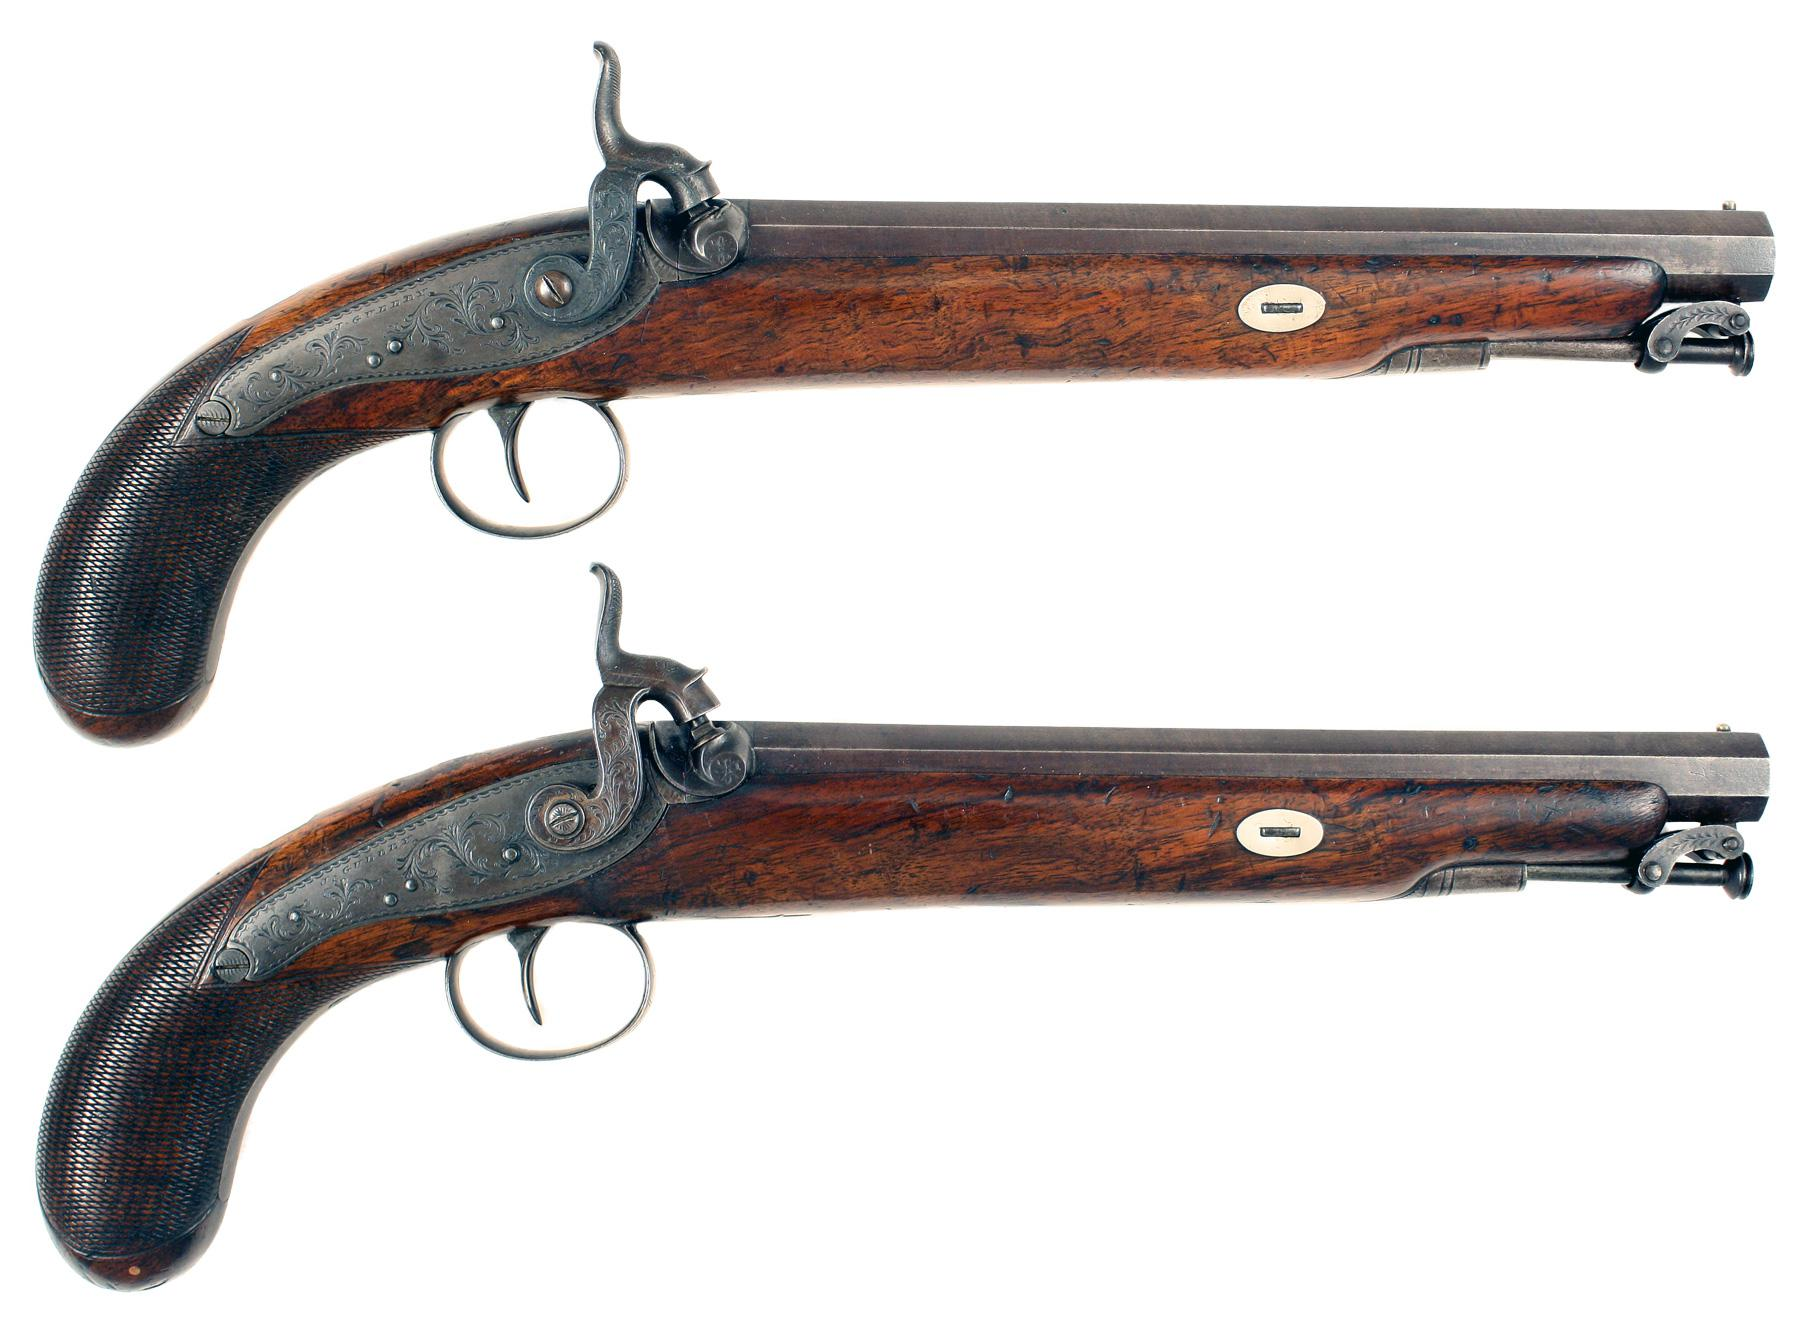 A Pair of Percussion Pistols by J. Gulley of London